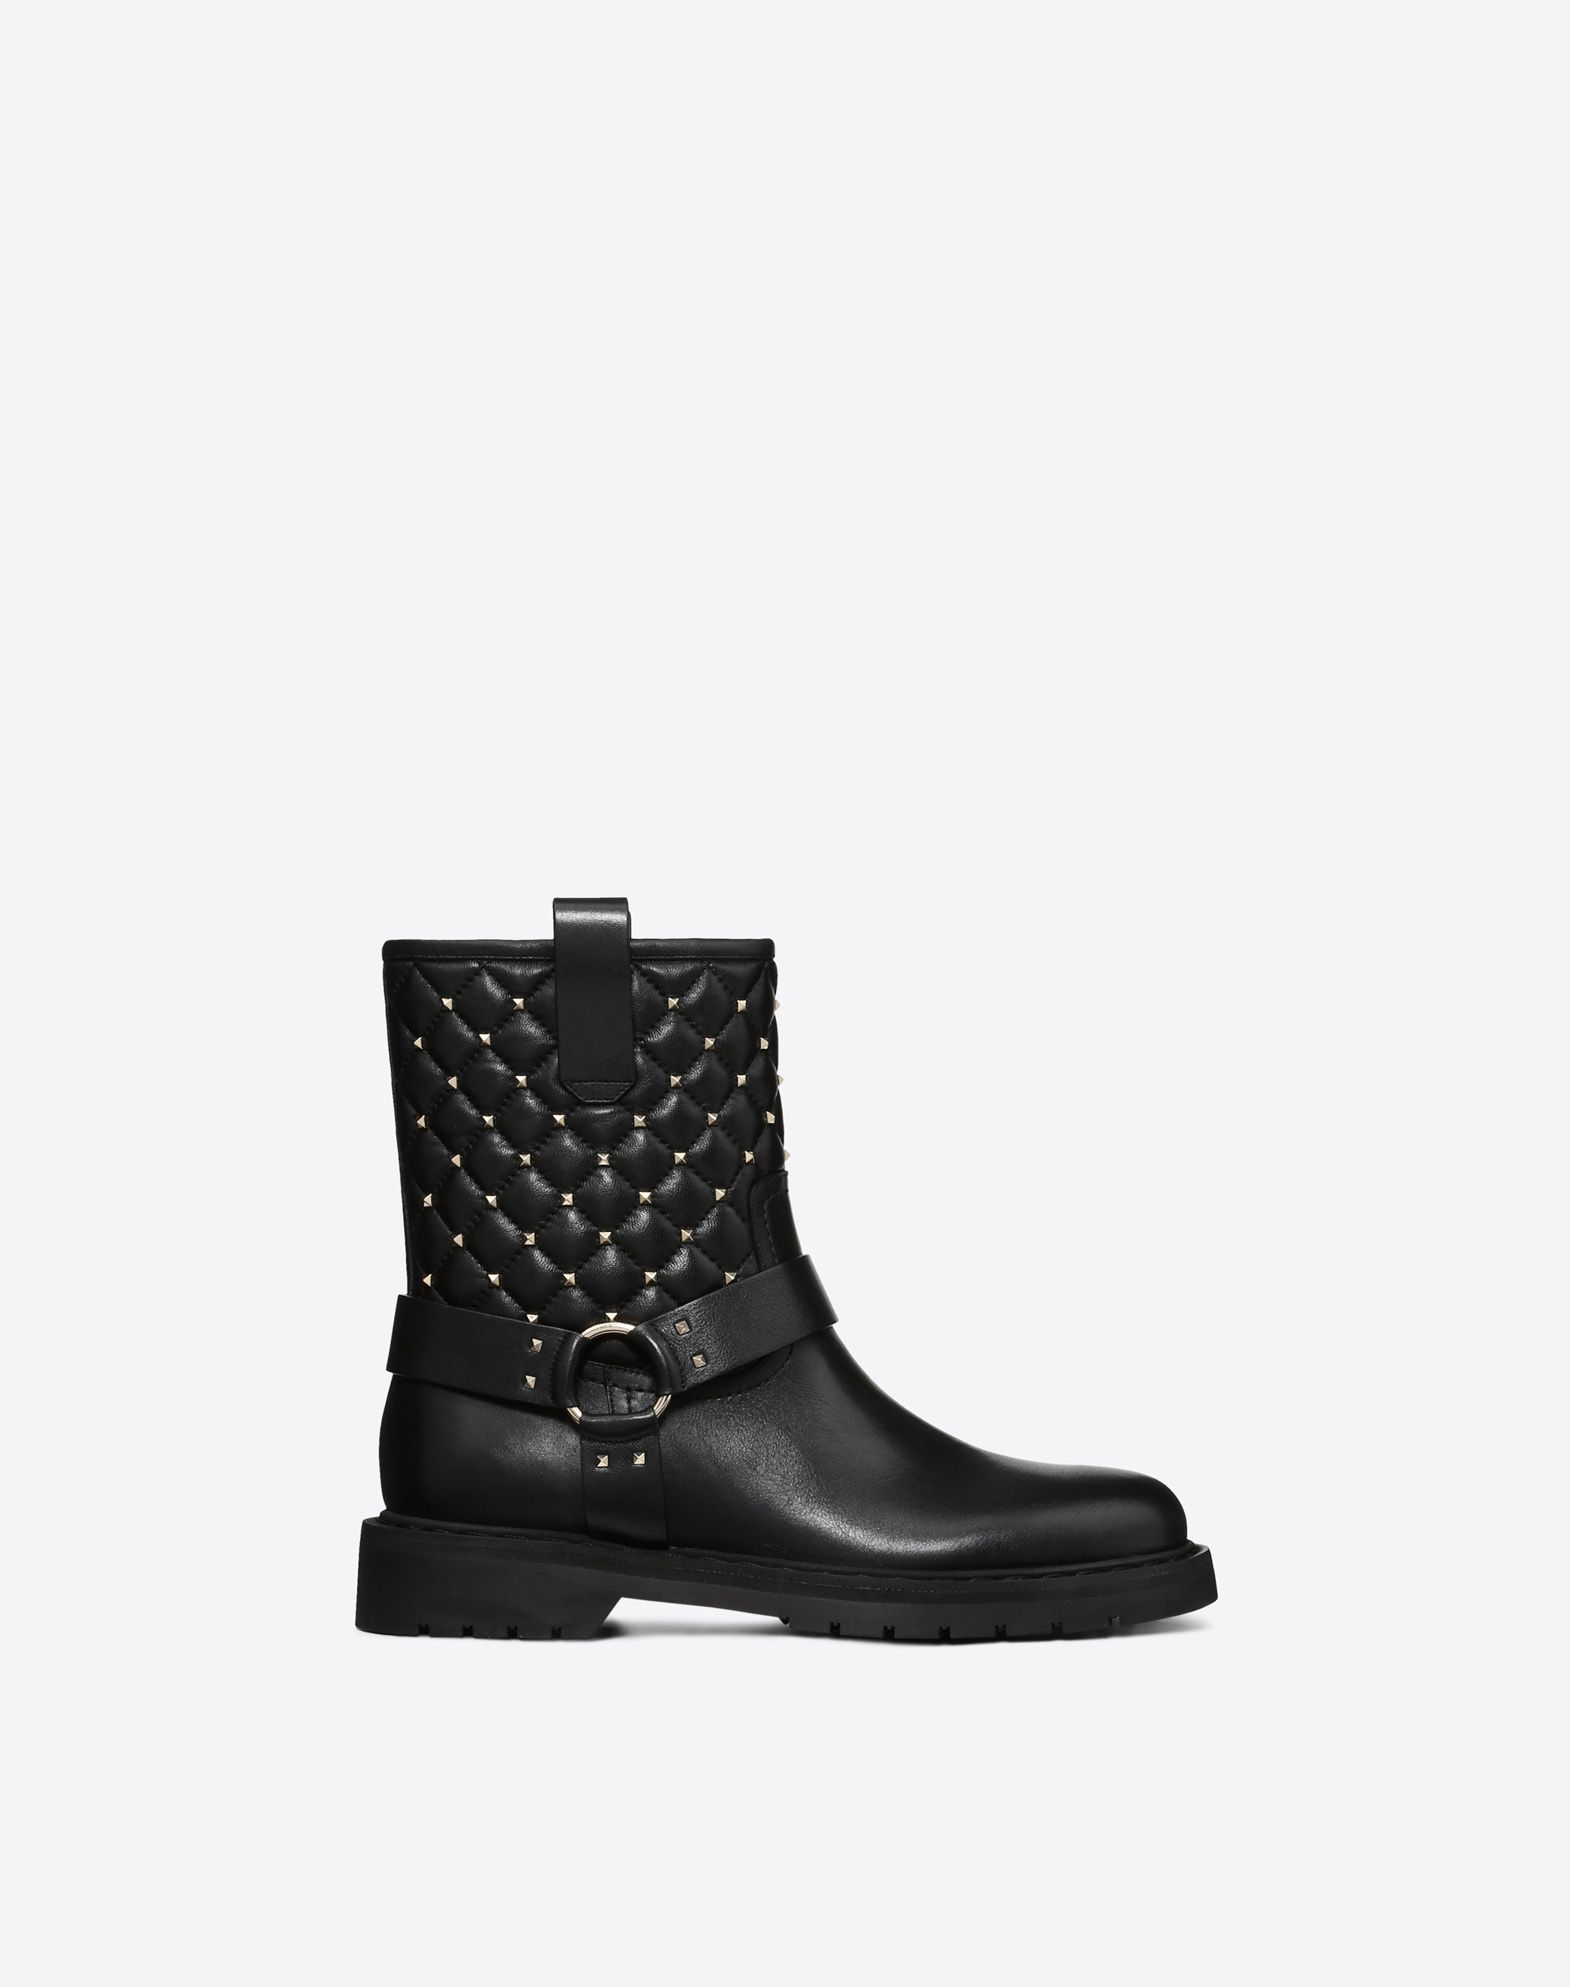 Rockstud Spike biker boot